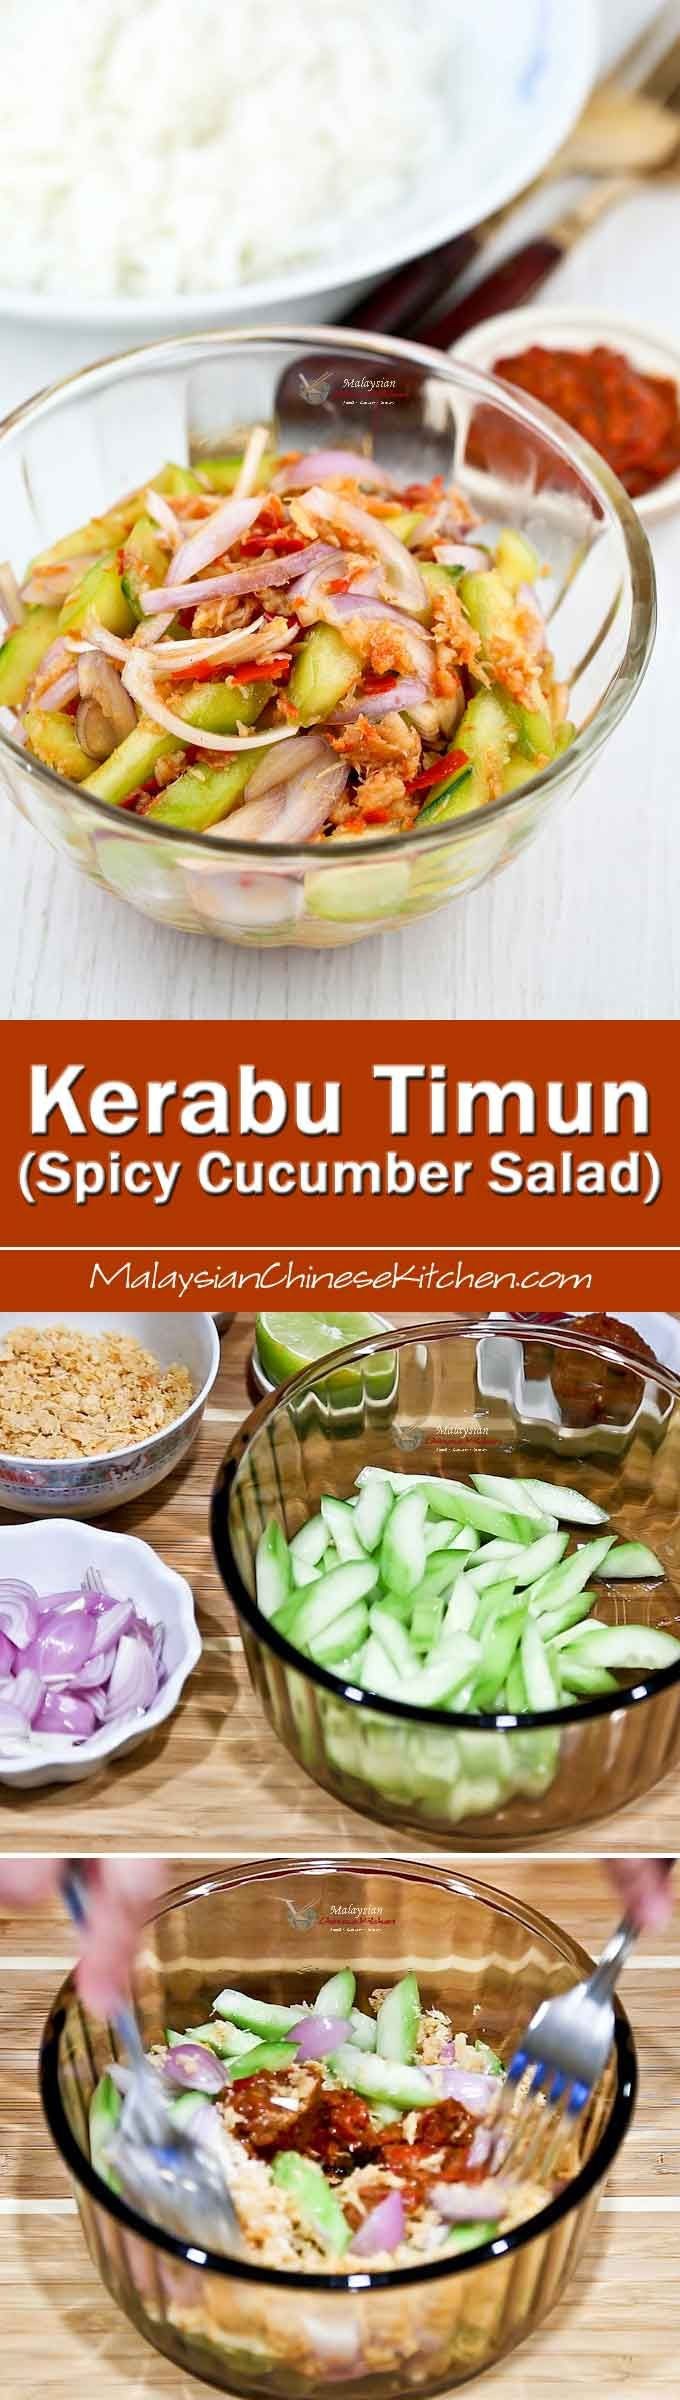 Kerabu Timun Spicy Cucumber Salad Is A Spicy And Appetizing Malaysian Salad That Is Sure To Whet Your Appet Spicy Cucumber Salad Spicy Recipes Cucumber Salad